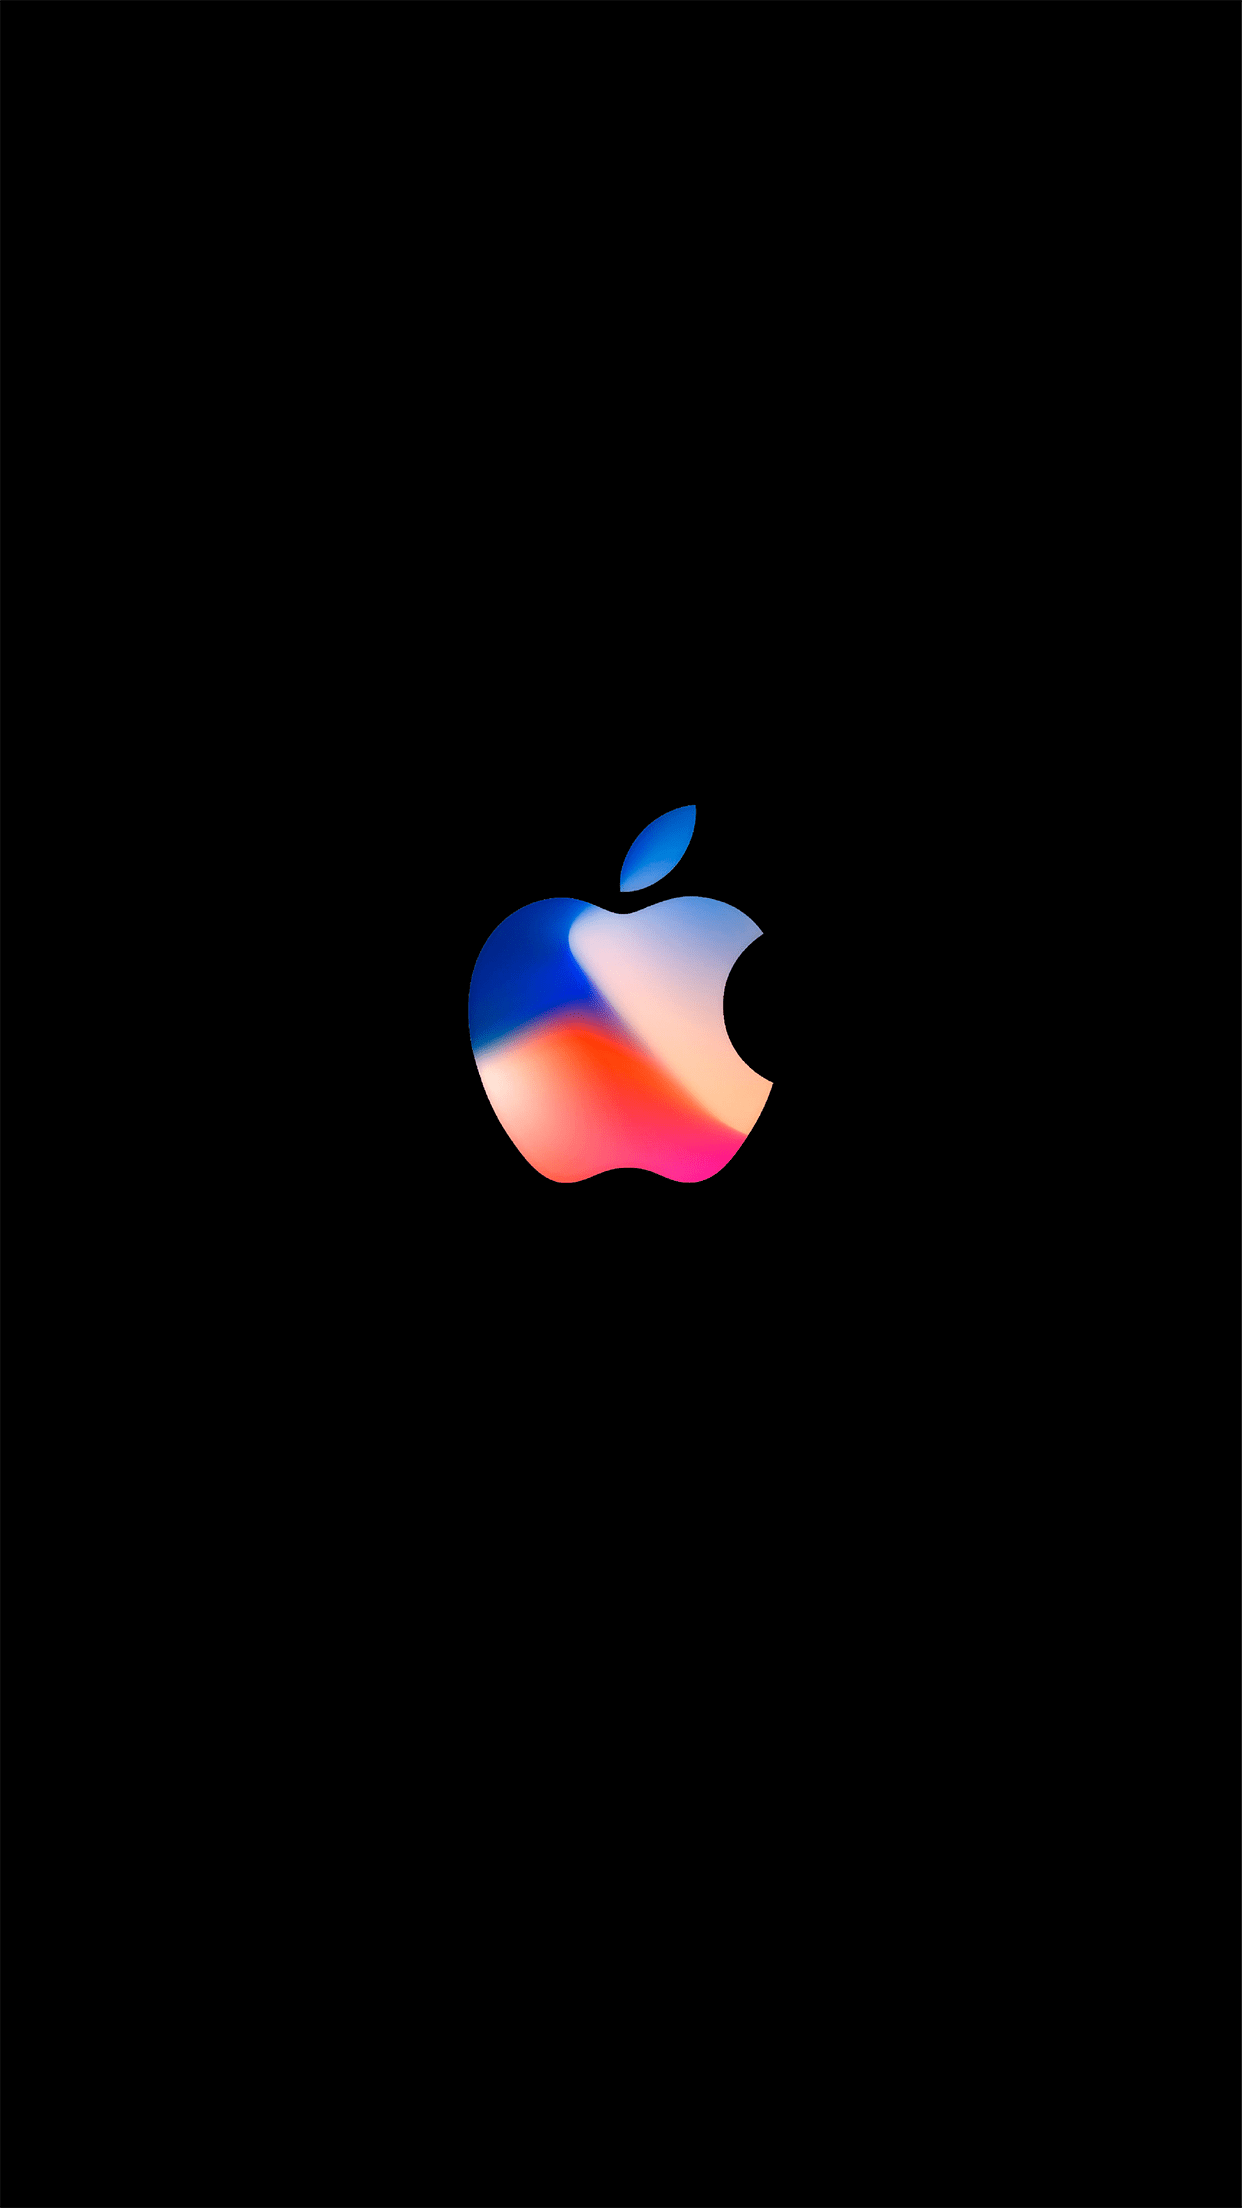 Black Phone Wallpaper Iphone 8 Event Wallpapers